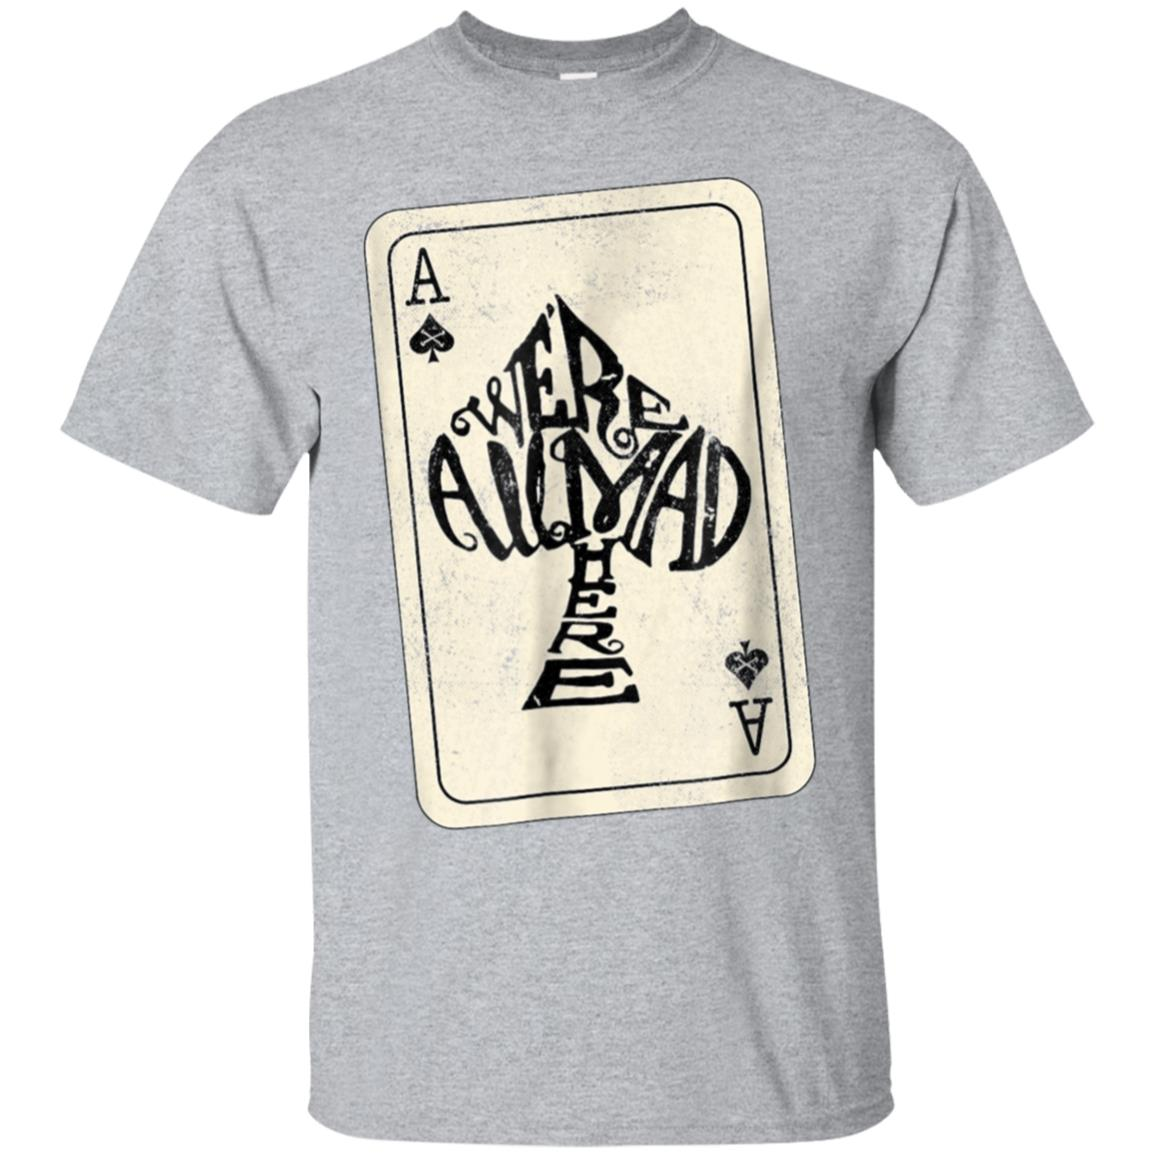 Ace of Spades We're All Mad Here Alice In Wonderland T-Shirt 99promocode